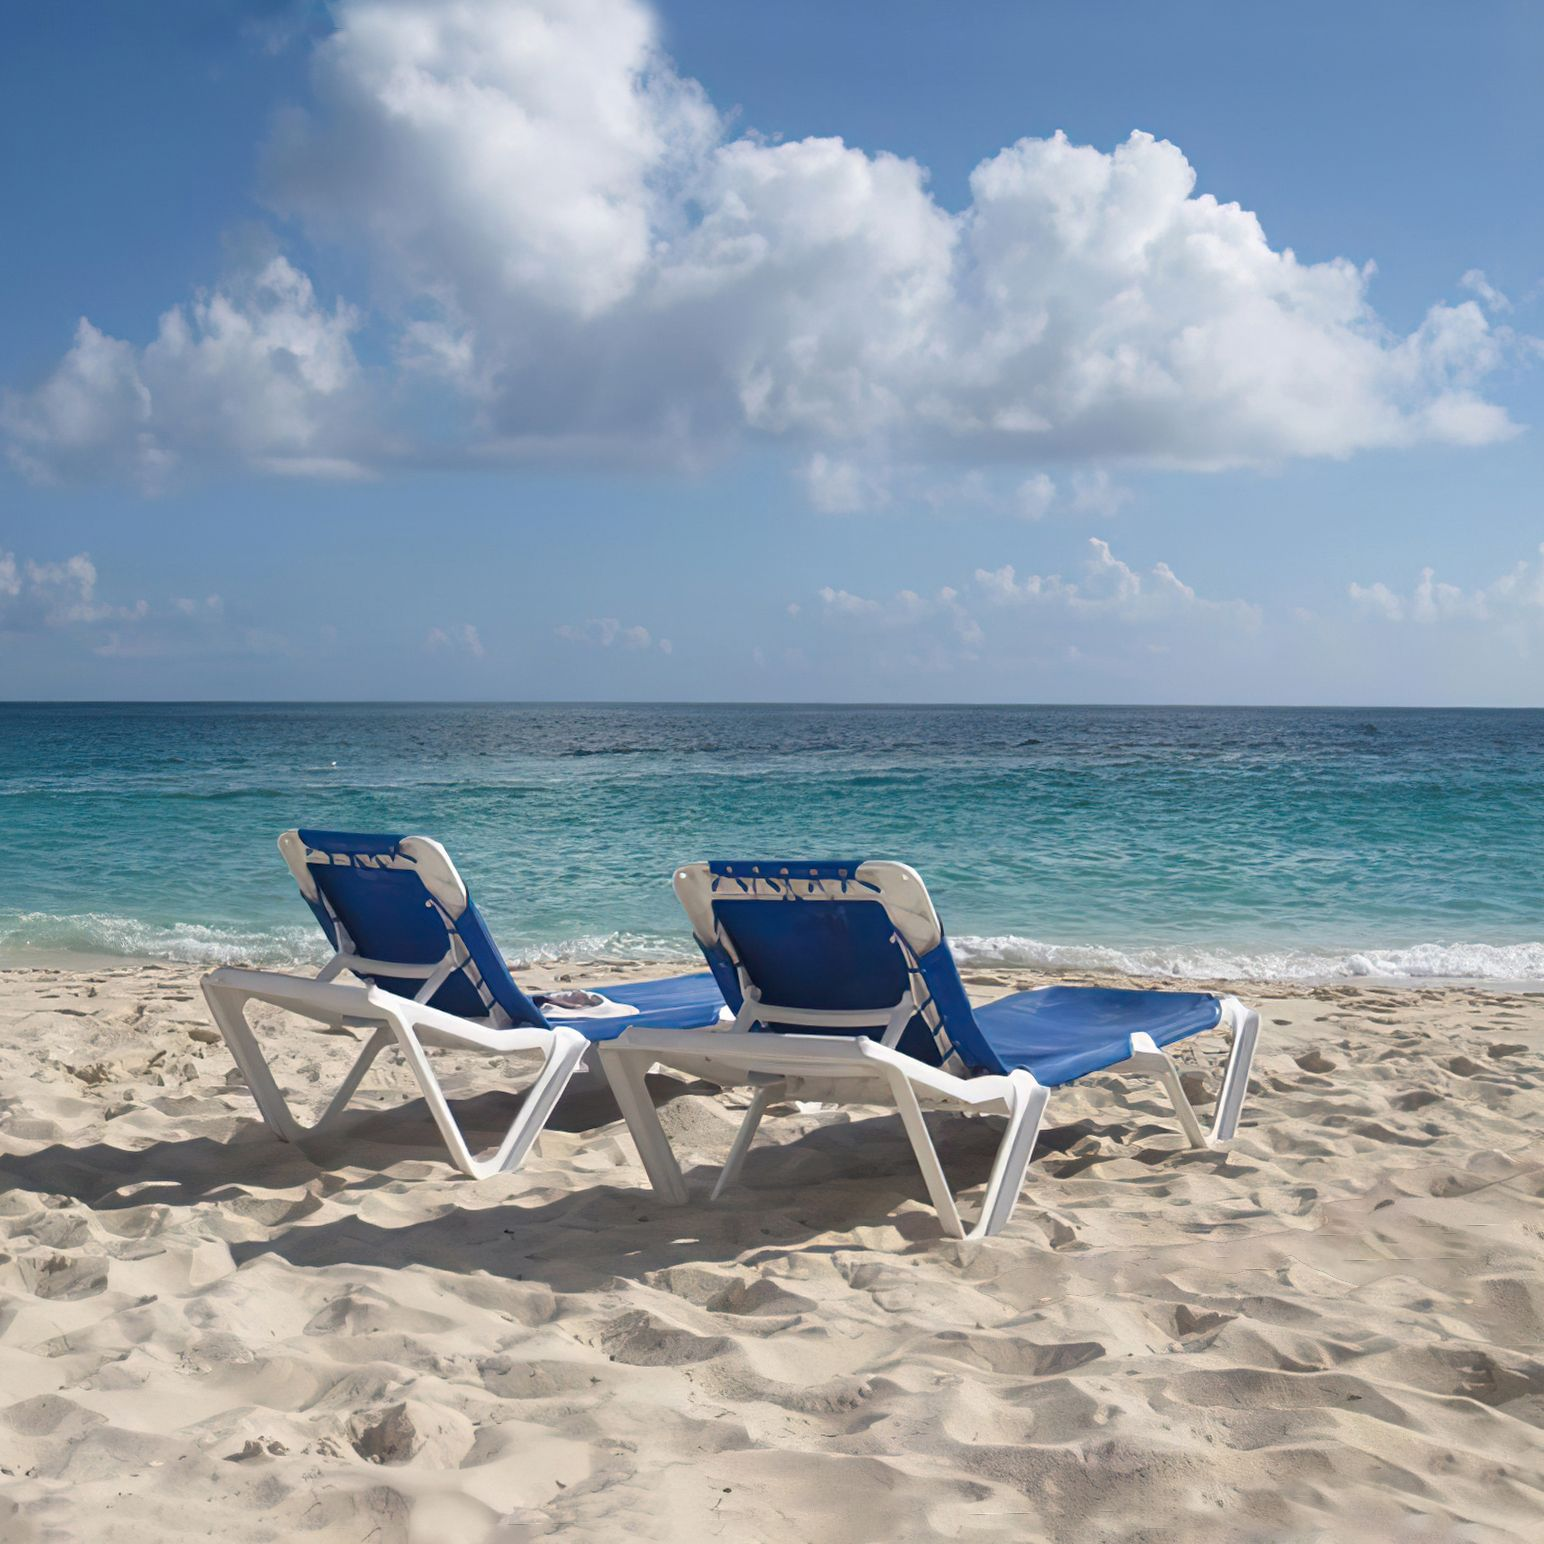 Lounging In The Sun Cape Cod Resorts Private Beach Vacation Resort